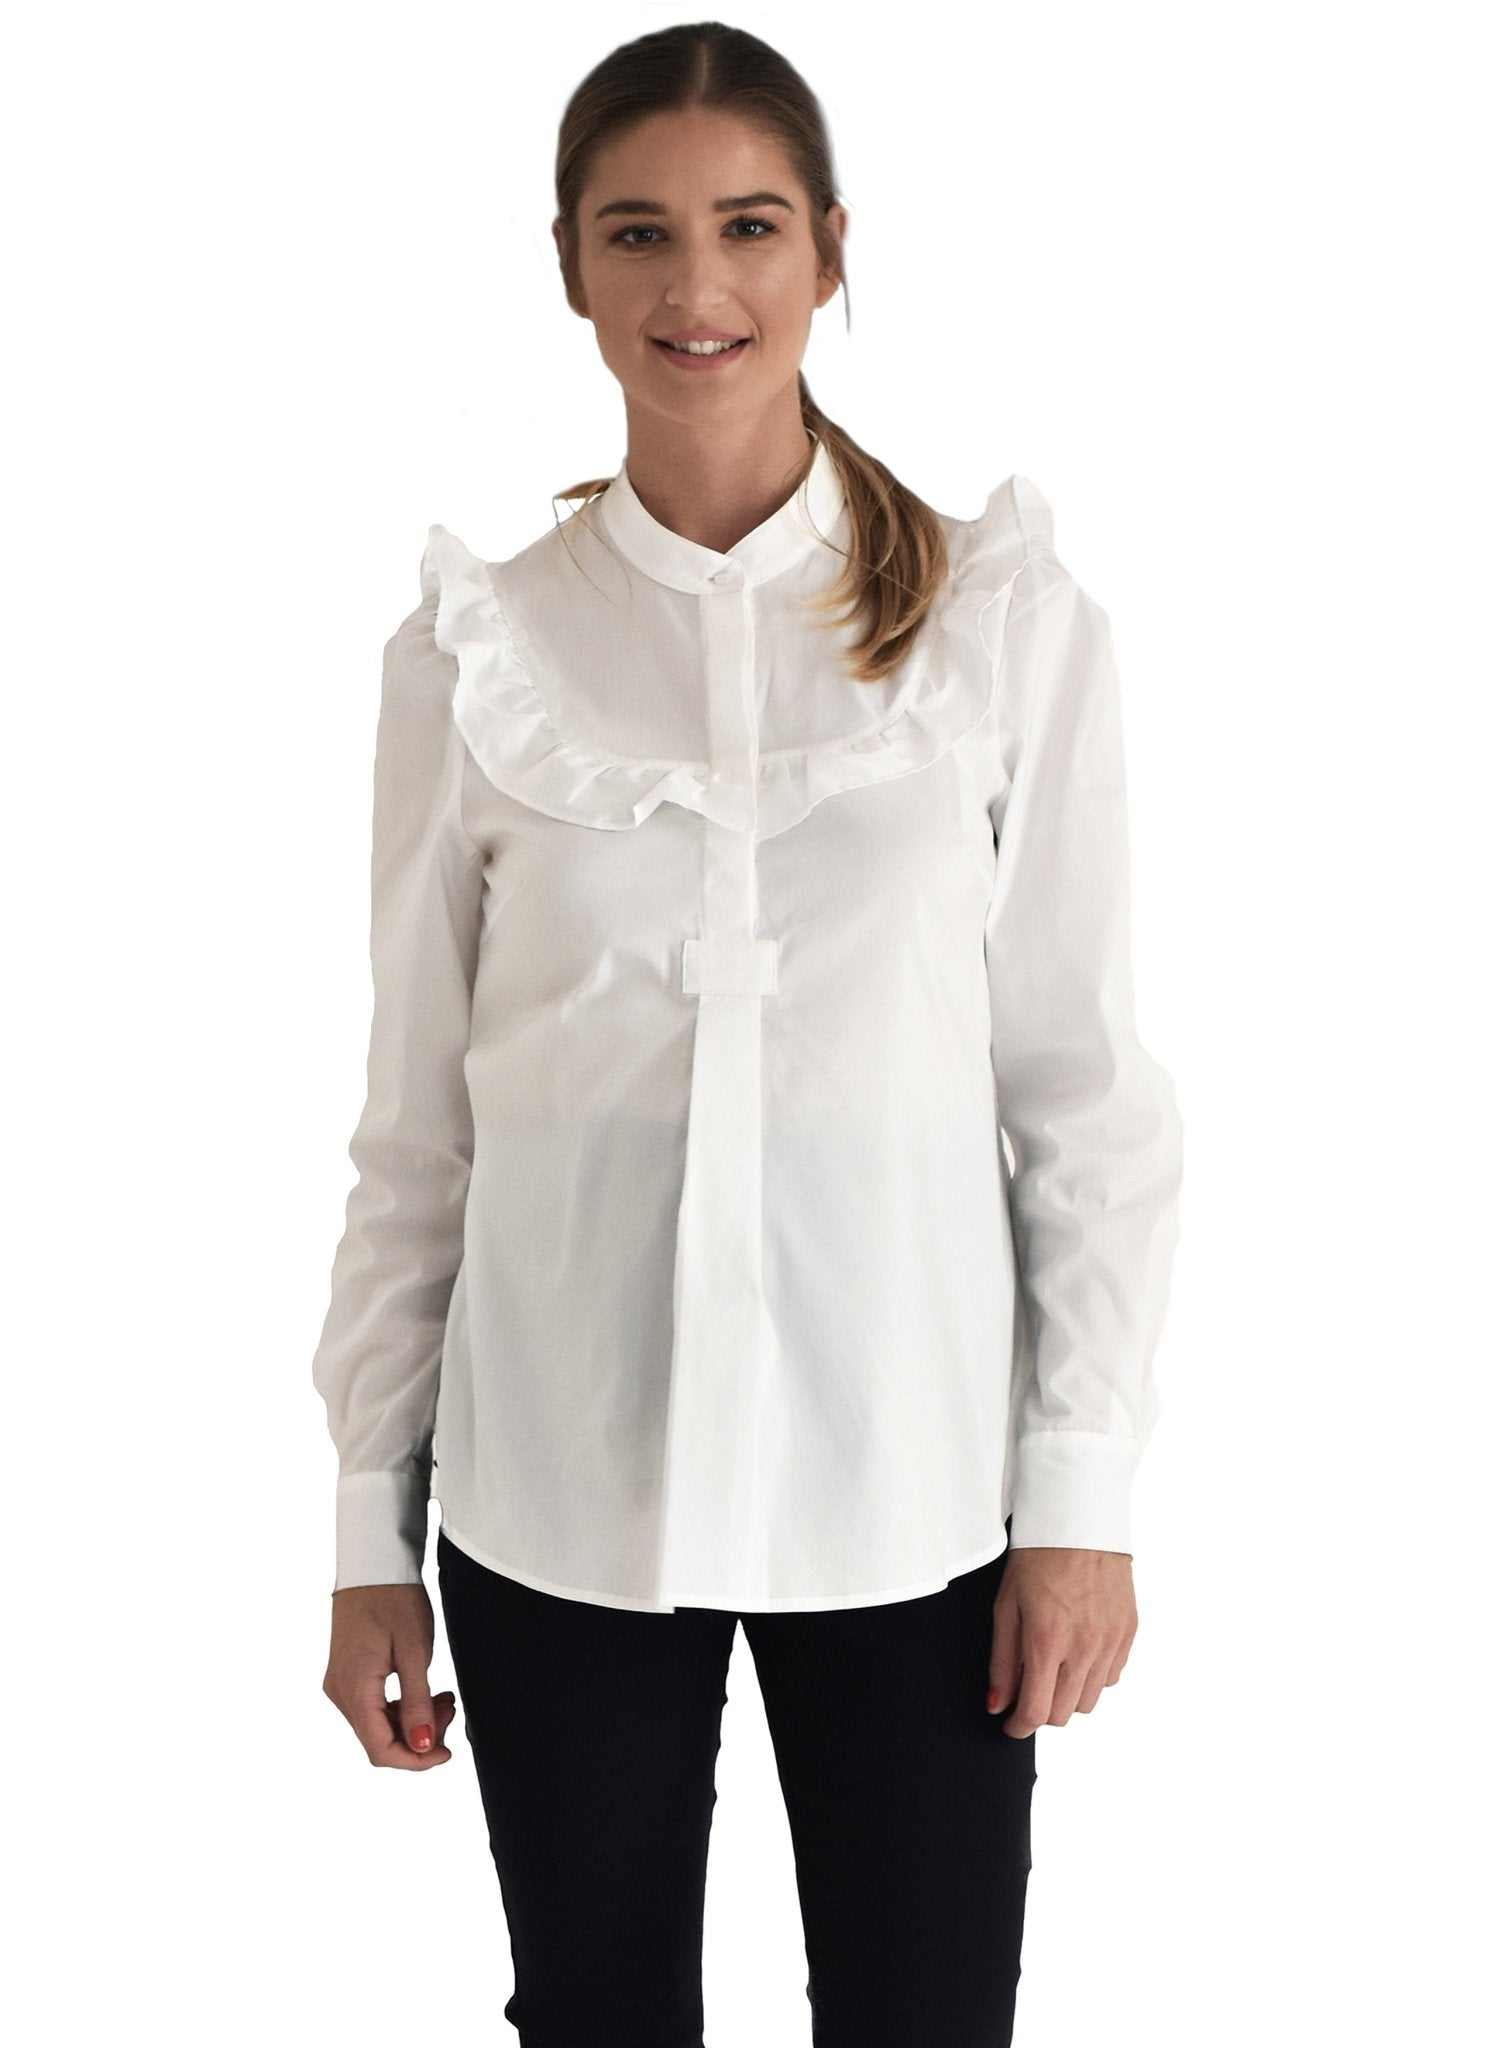 Aria Ruffle Maternity Blouse - White - Mums and Bumps